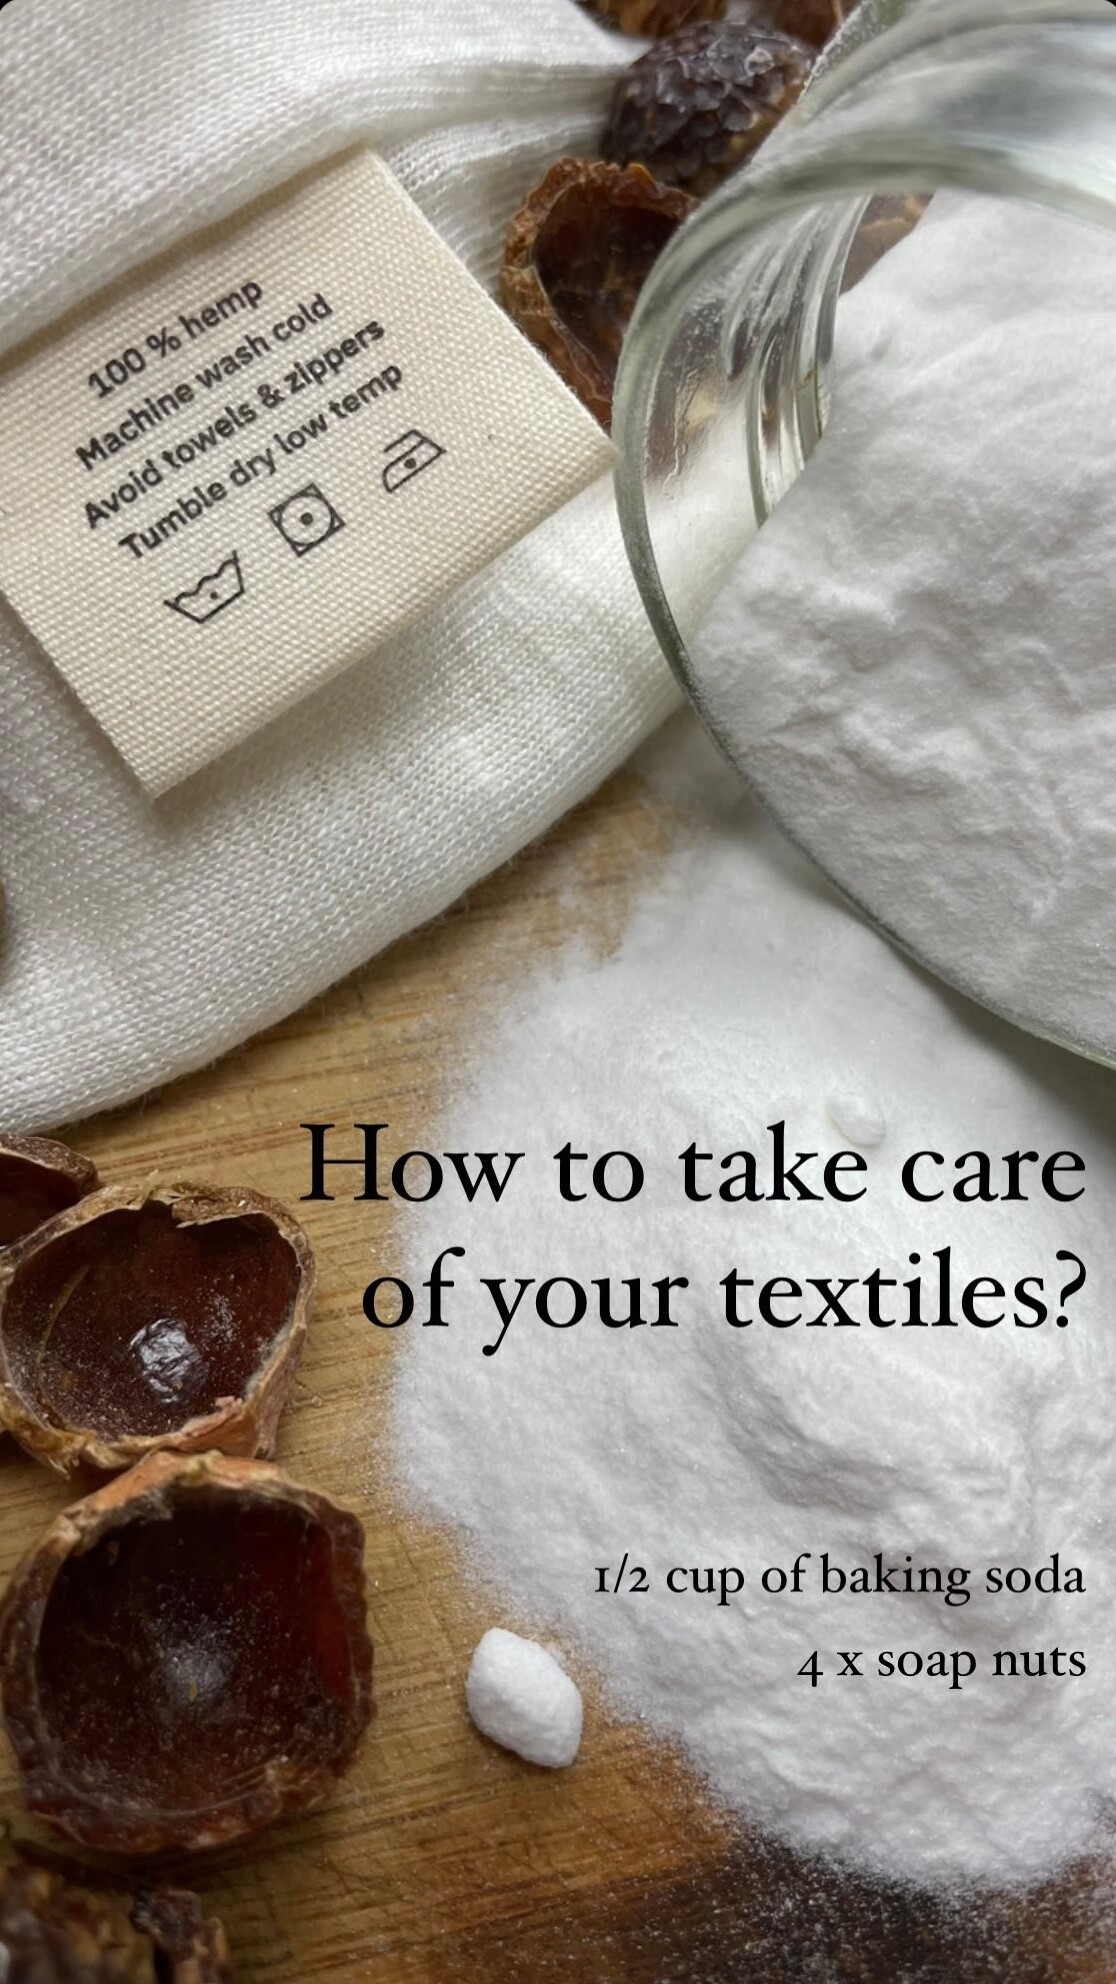 How to wash your clothes eco-friendly?